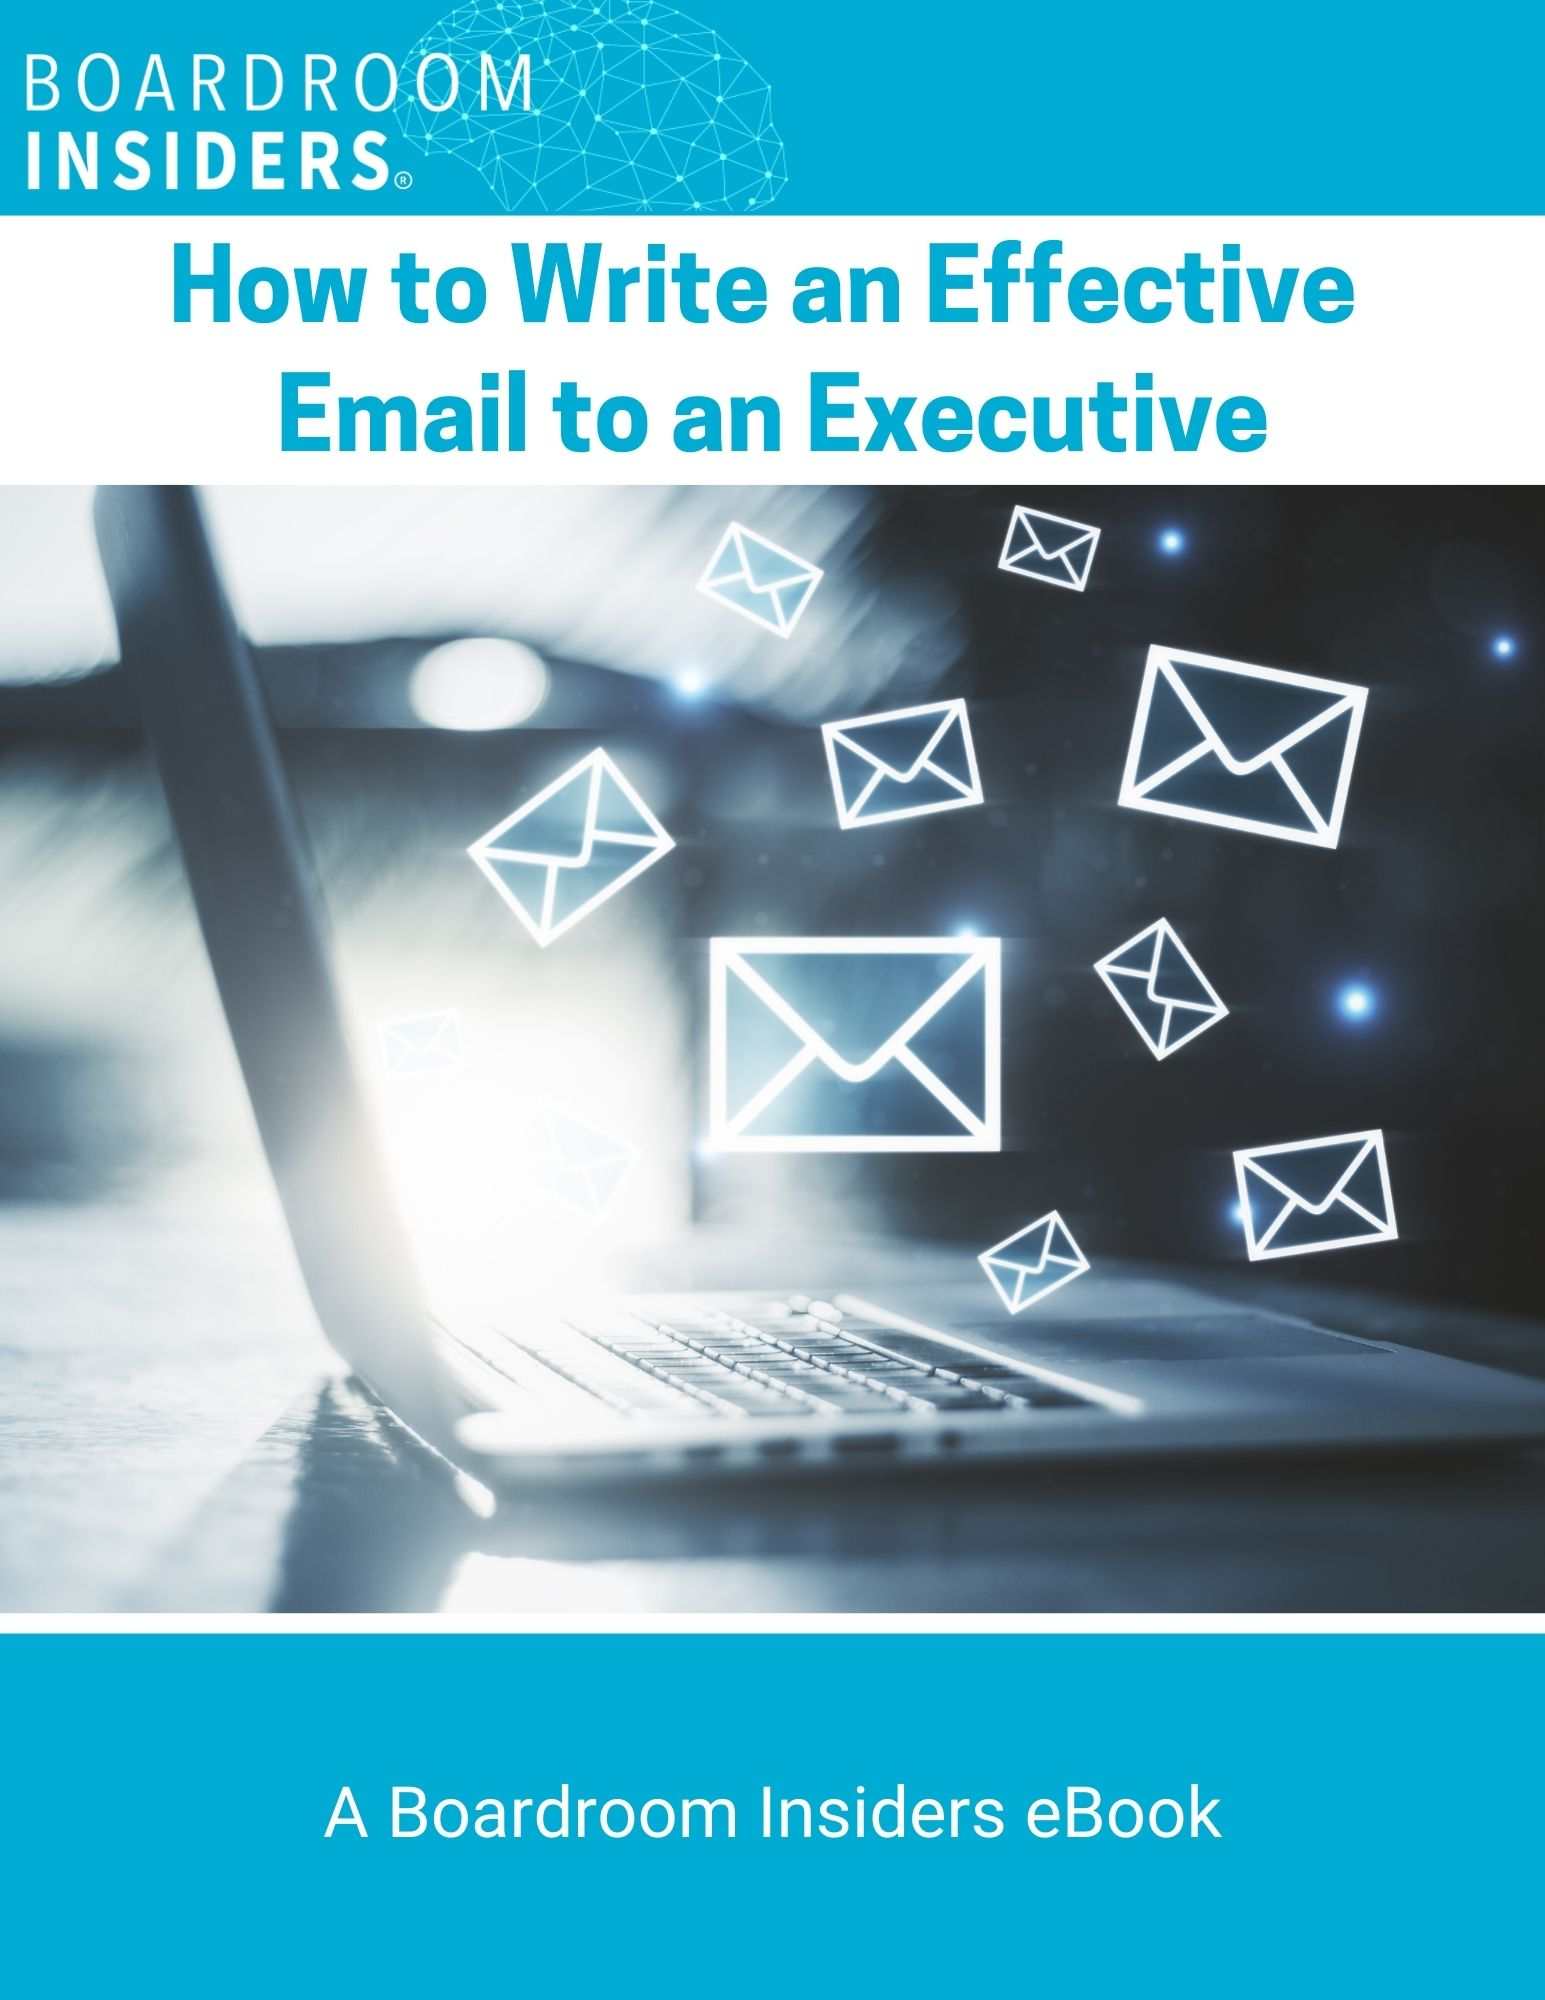 How to Write an Effective Email to an Executive